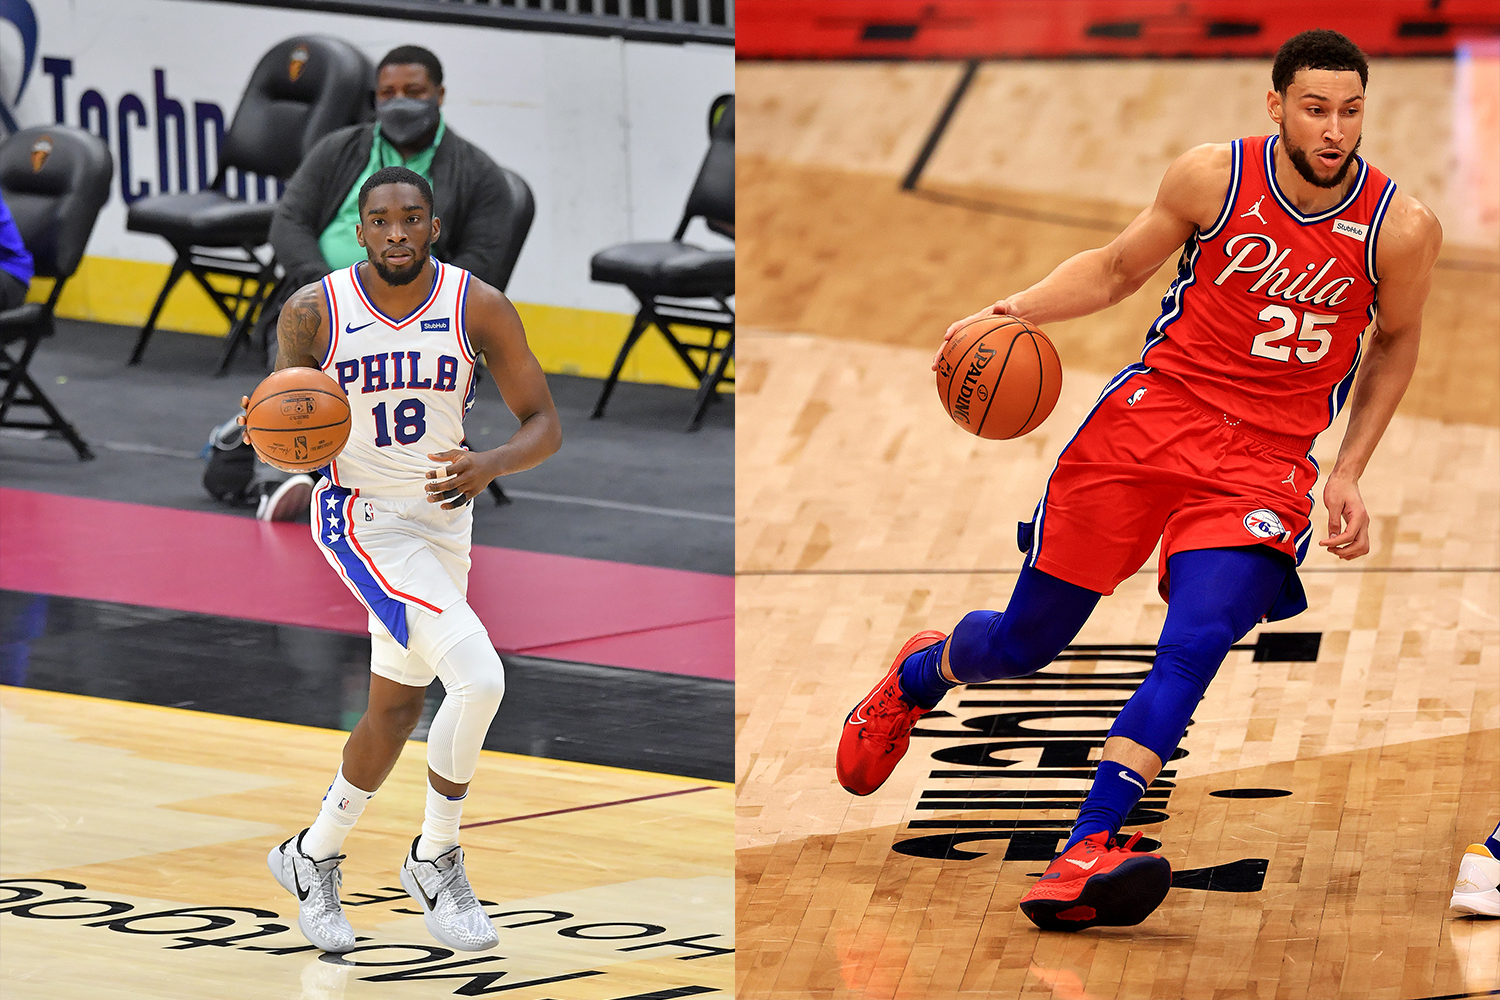 Shake Milton #18 of the Philadelphia 76ers brings the ball up court during the third quarter against the Cleveland Cavaliers (left) and Ben Simmons #25 of the Philadelphia 76ers brings the ball up the floor during a game against the Toronto Raptors (right)